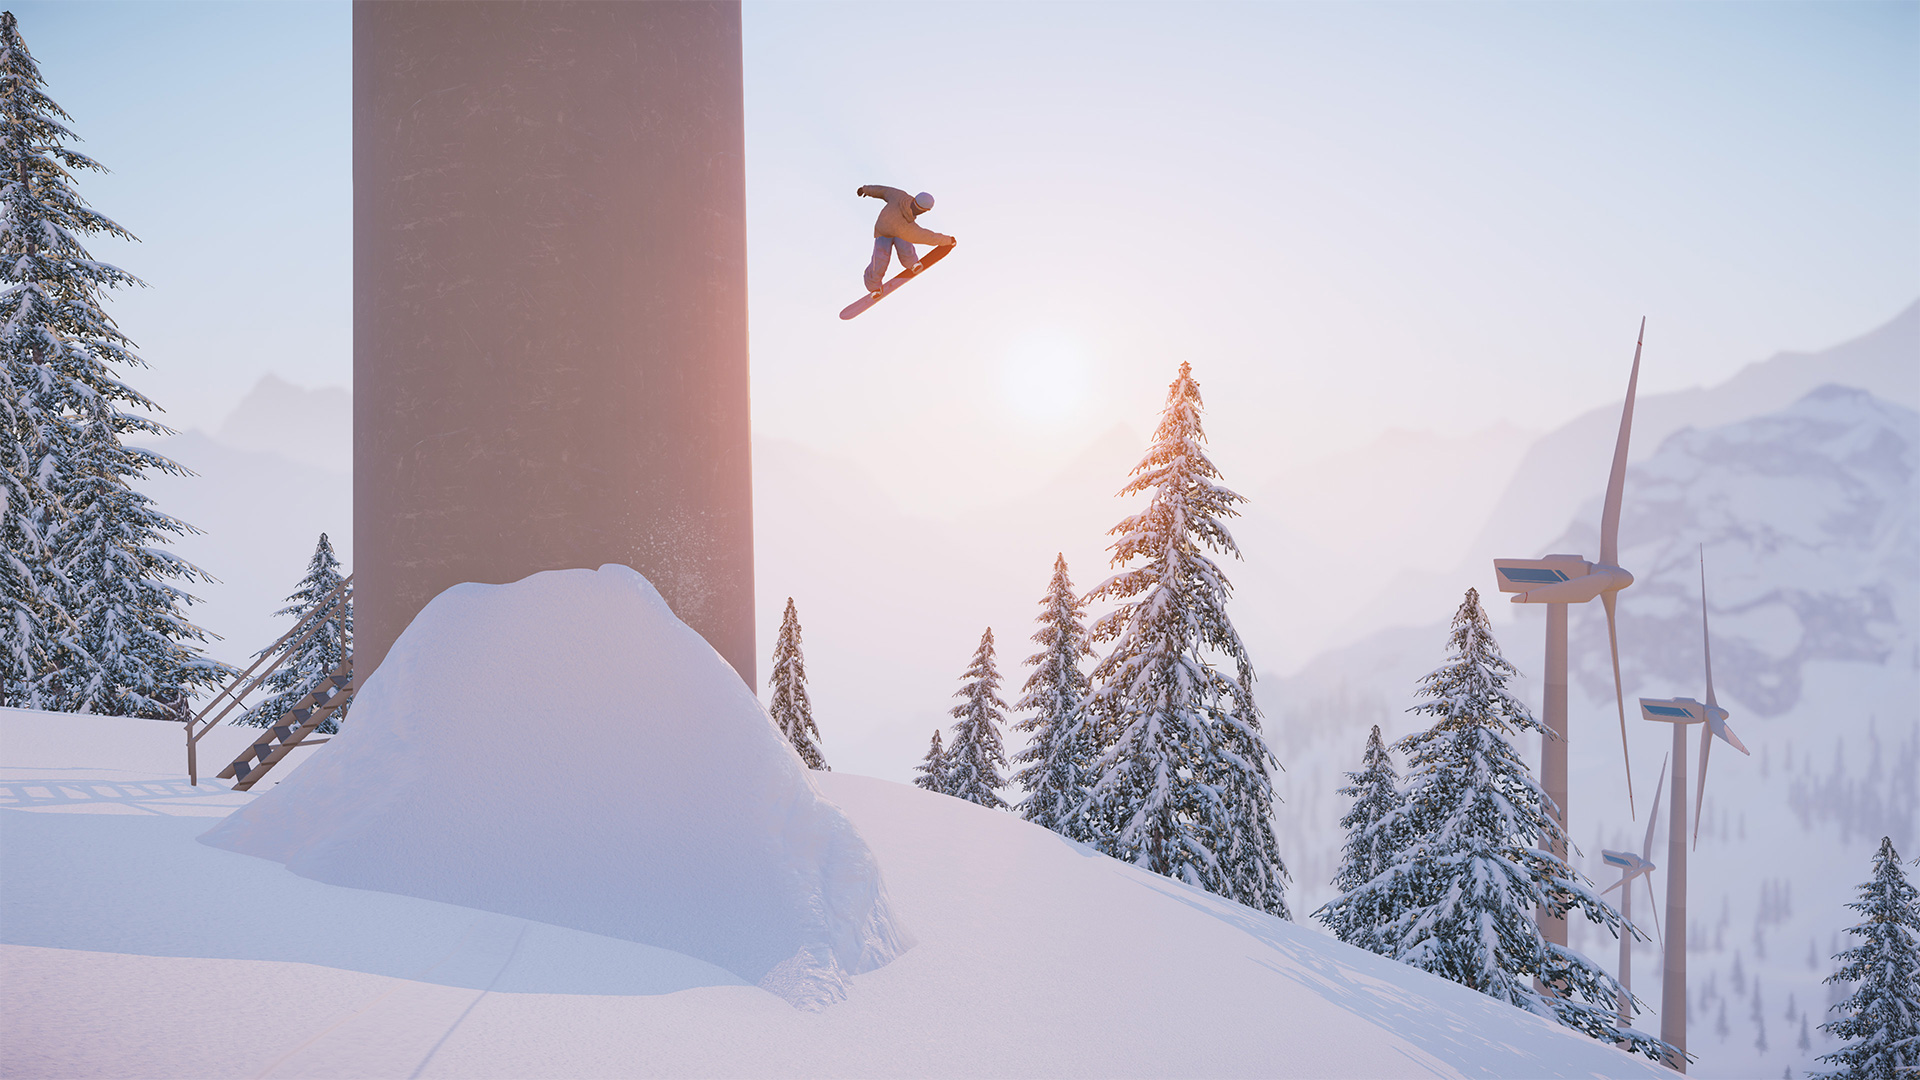 Winter Sports Game Snow Gets Big Snowboarding Update In Advance Of PS4 Debut